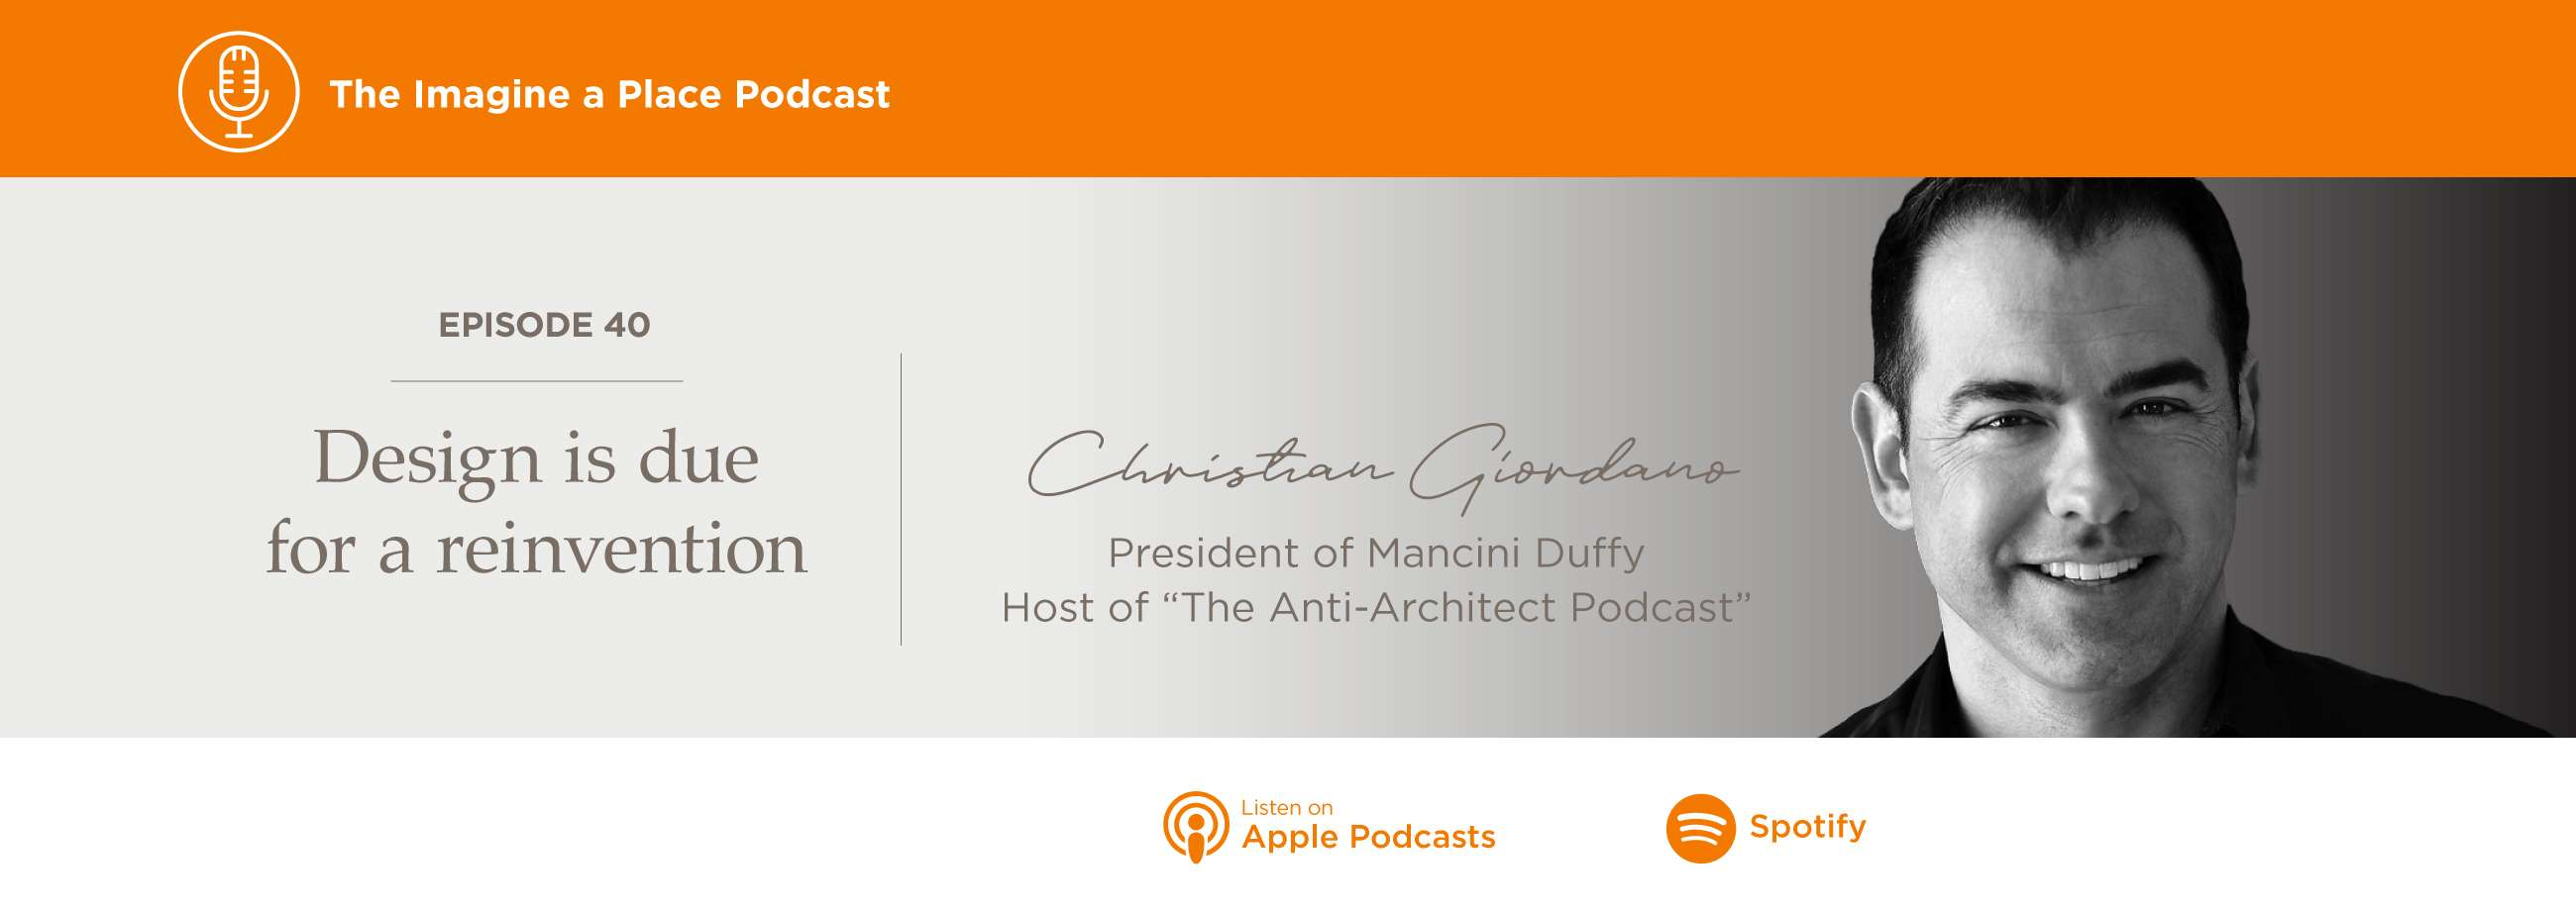 Imagine a Place Podcast with Christian Giordano of Mancini Duffy